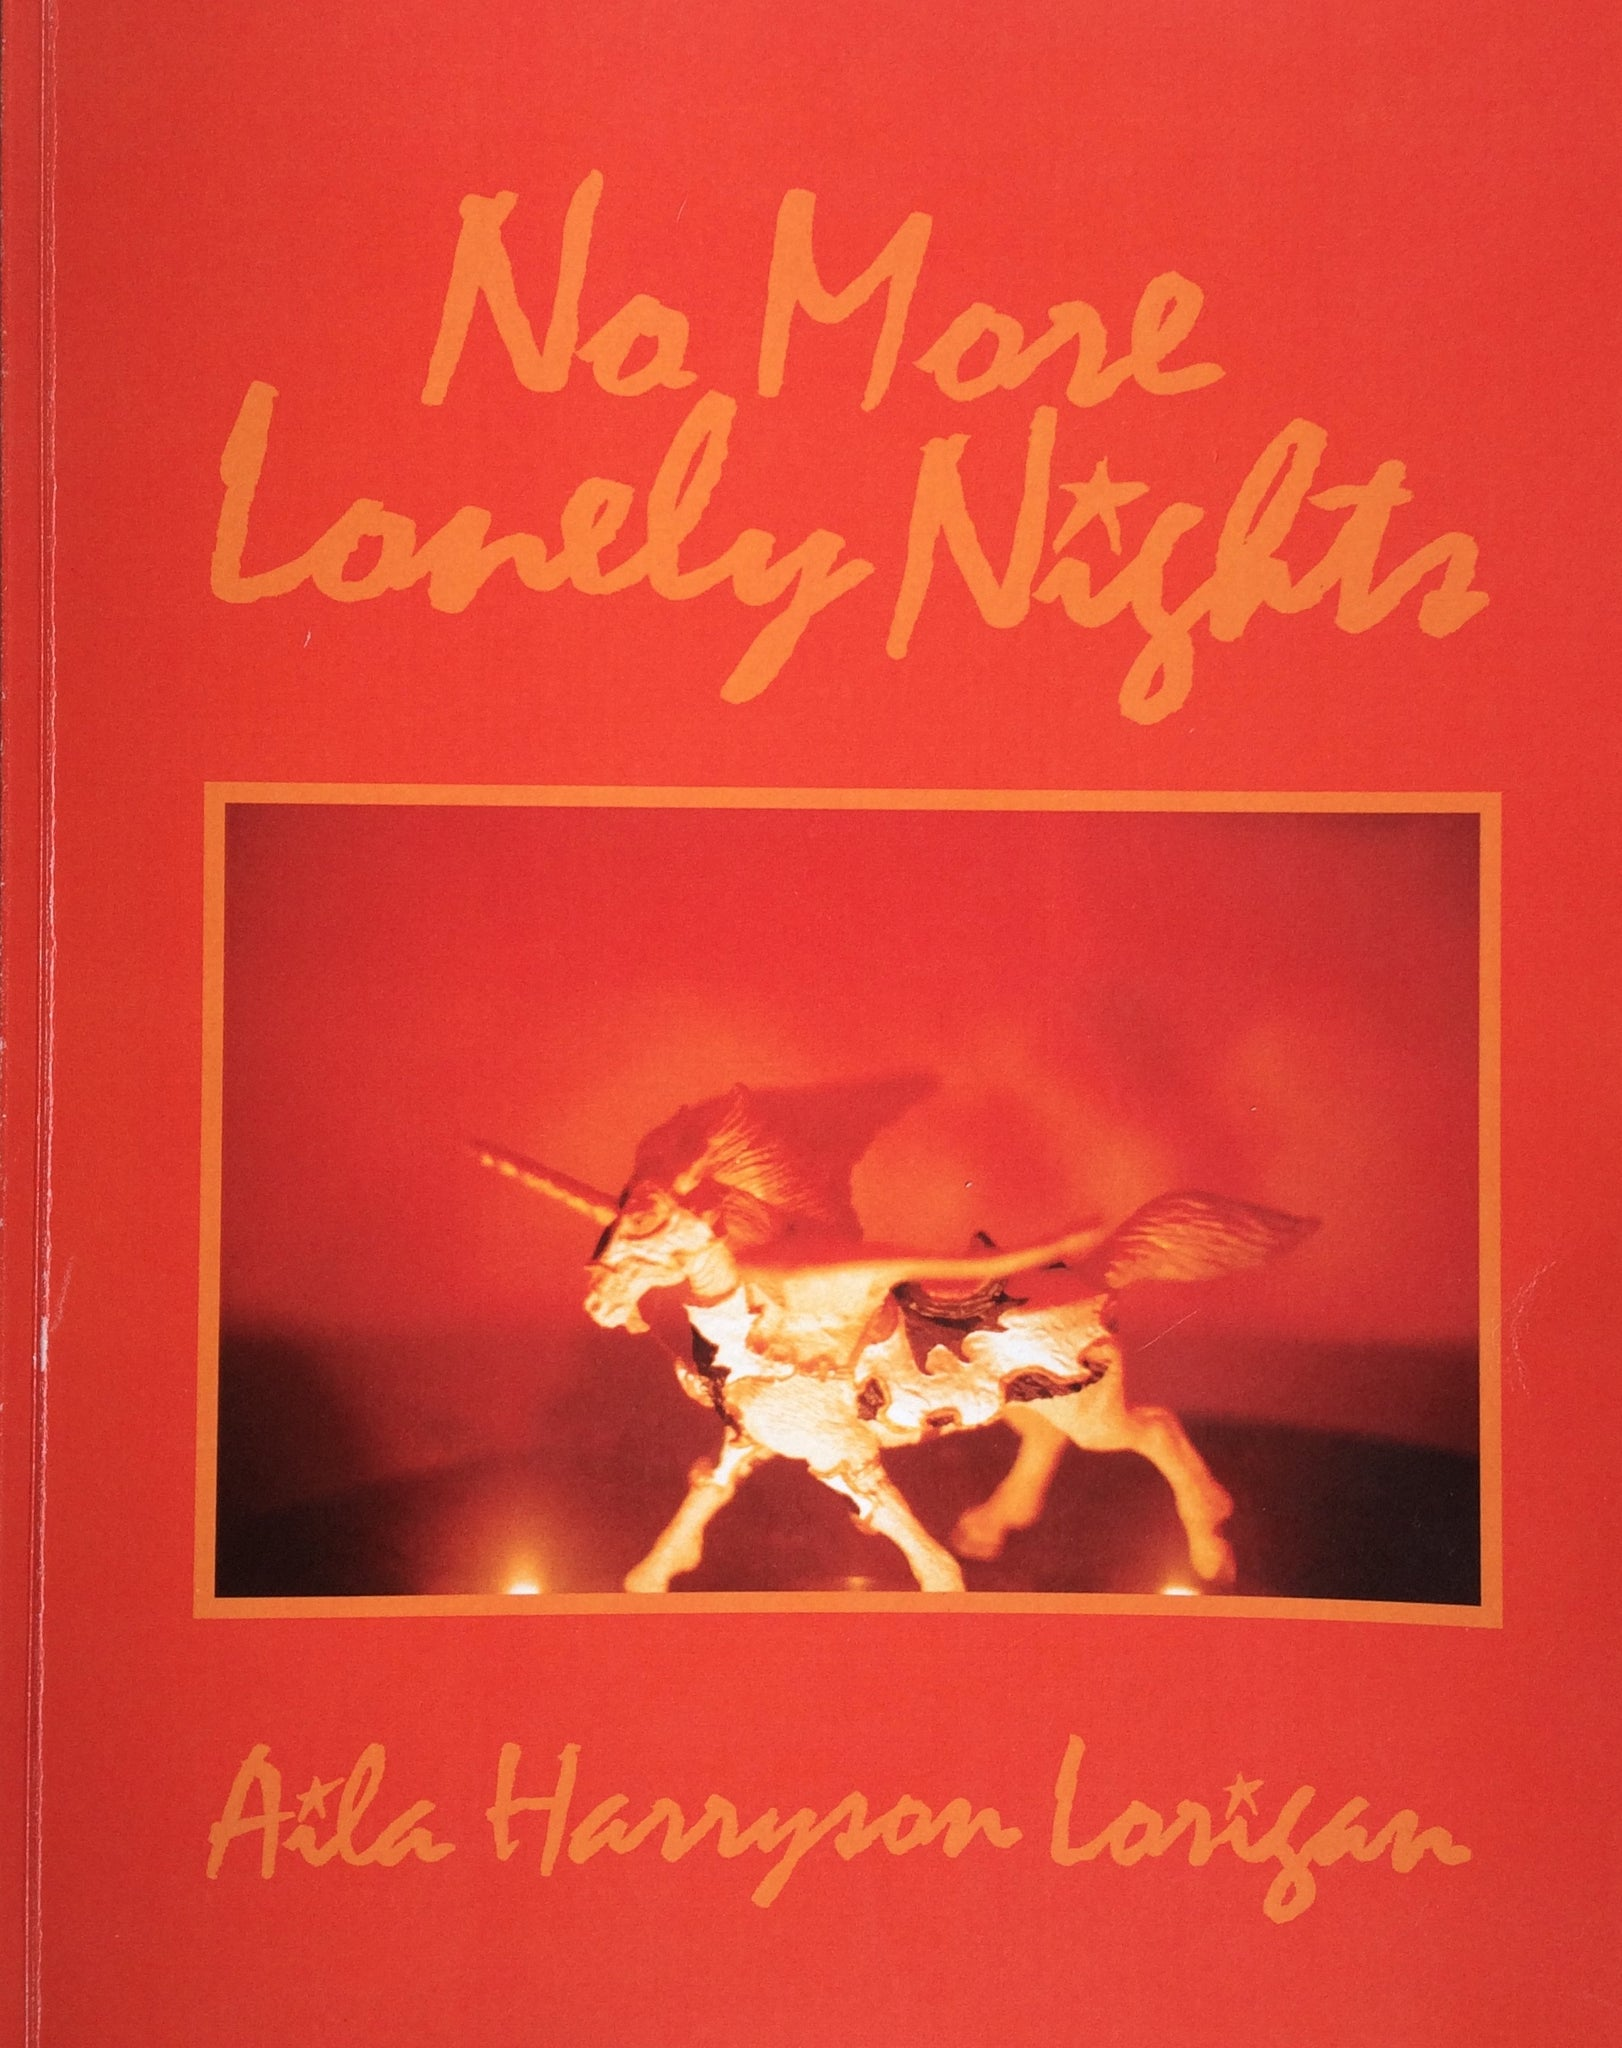 No More Lonely Nights, Aila Harryson Lorigan - The Library Project